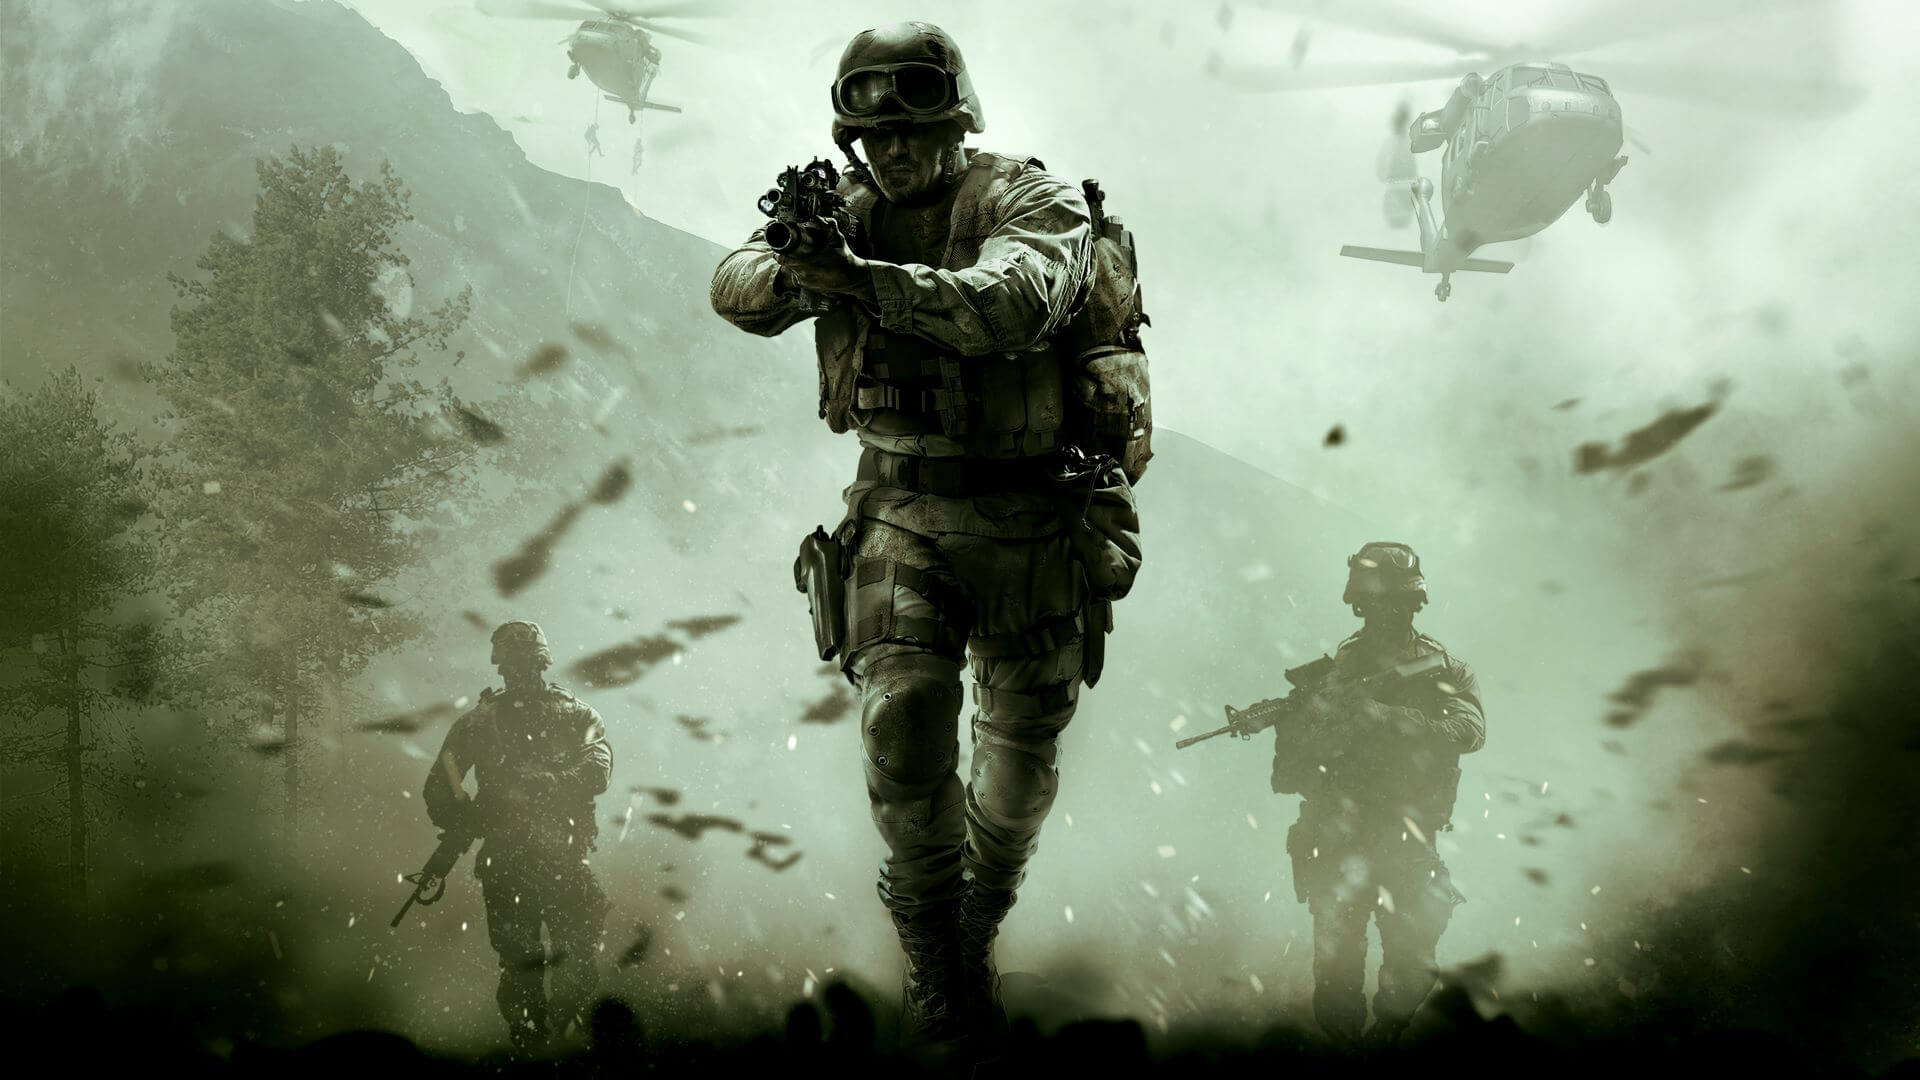 The Next Call of Duty Will Have a Single-Player Campaign